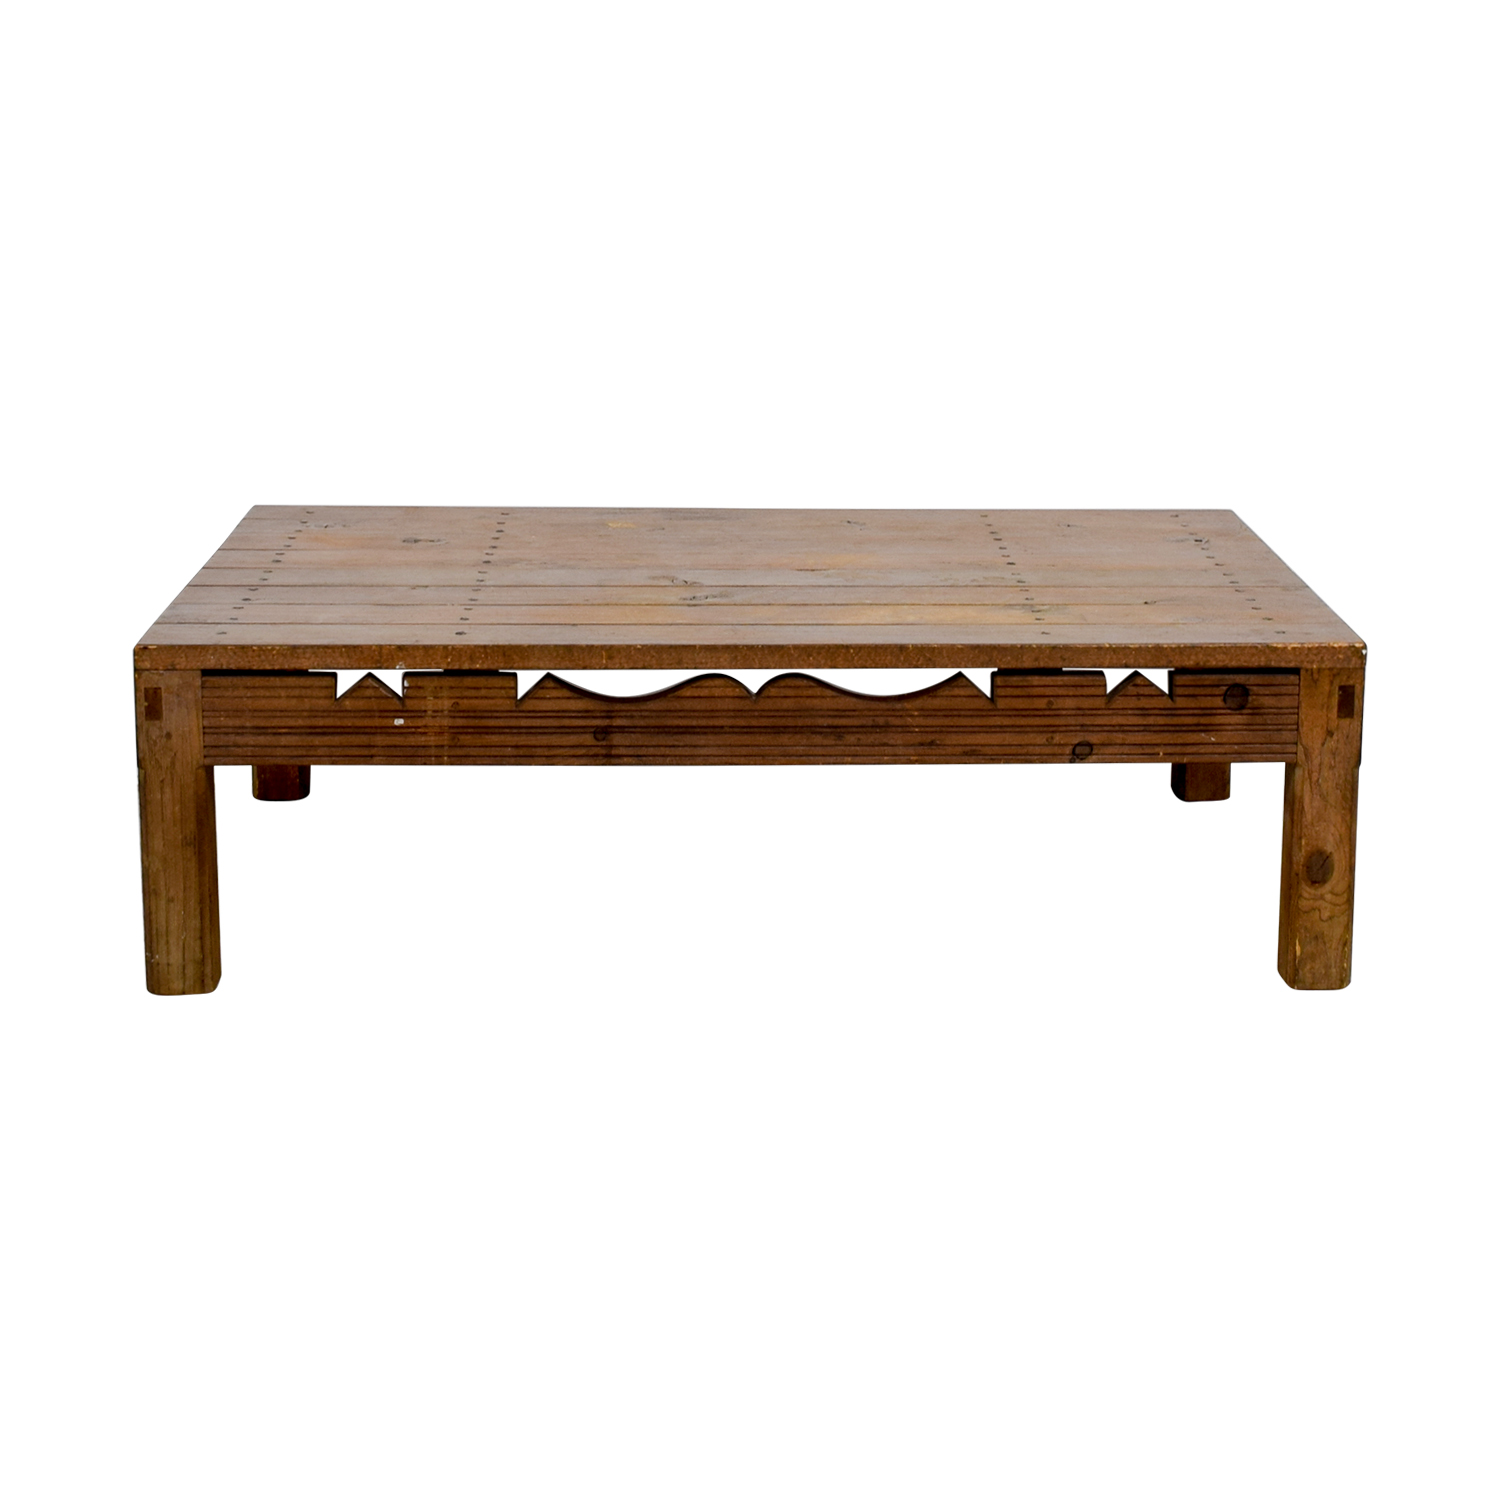 Low Rustic Coffee Table: Coffee Tables: Used Coffee Tables For Sale